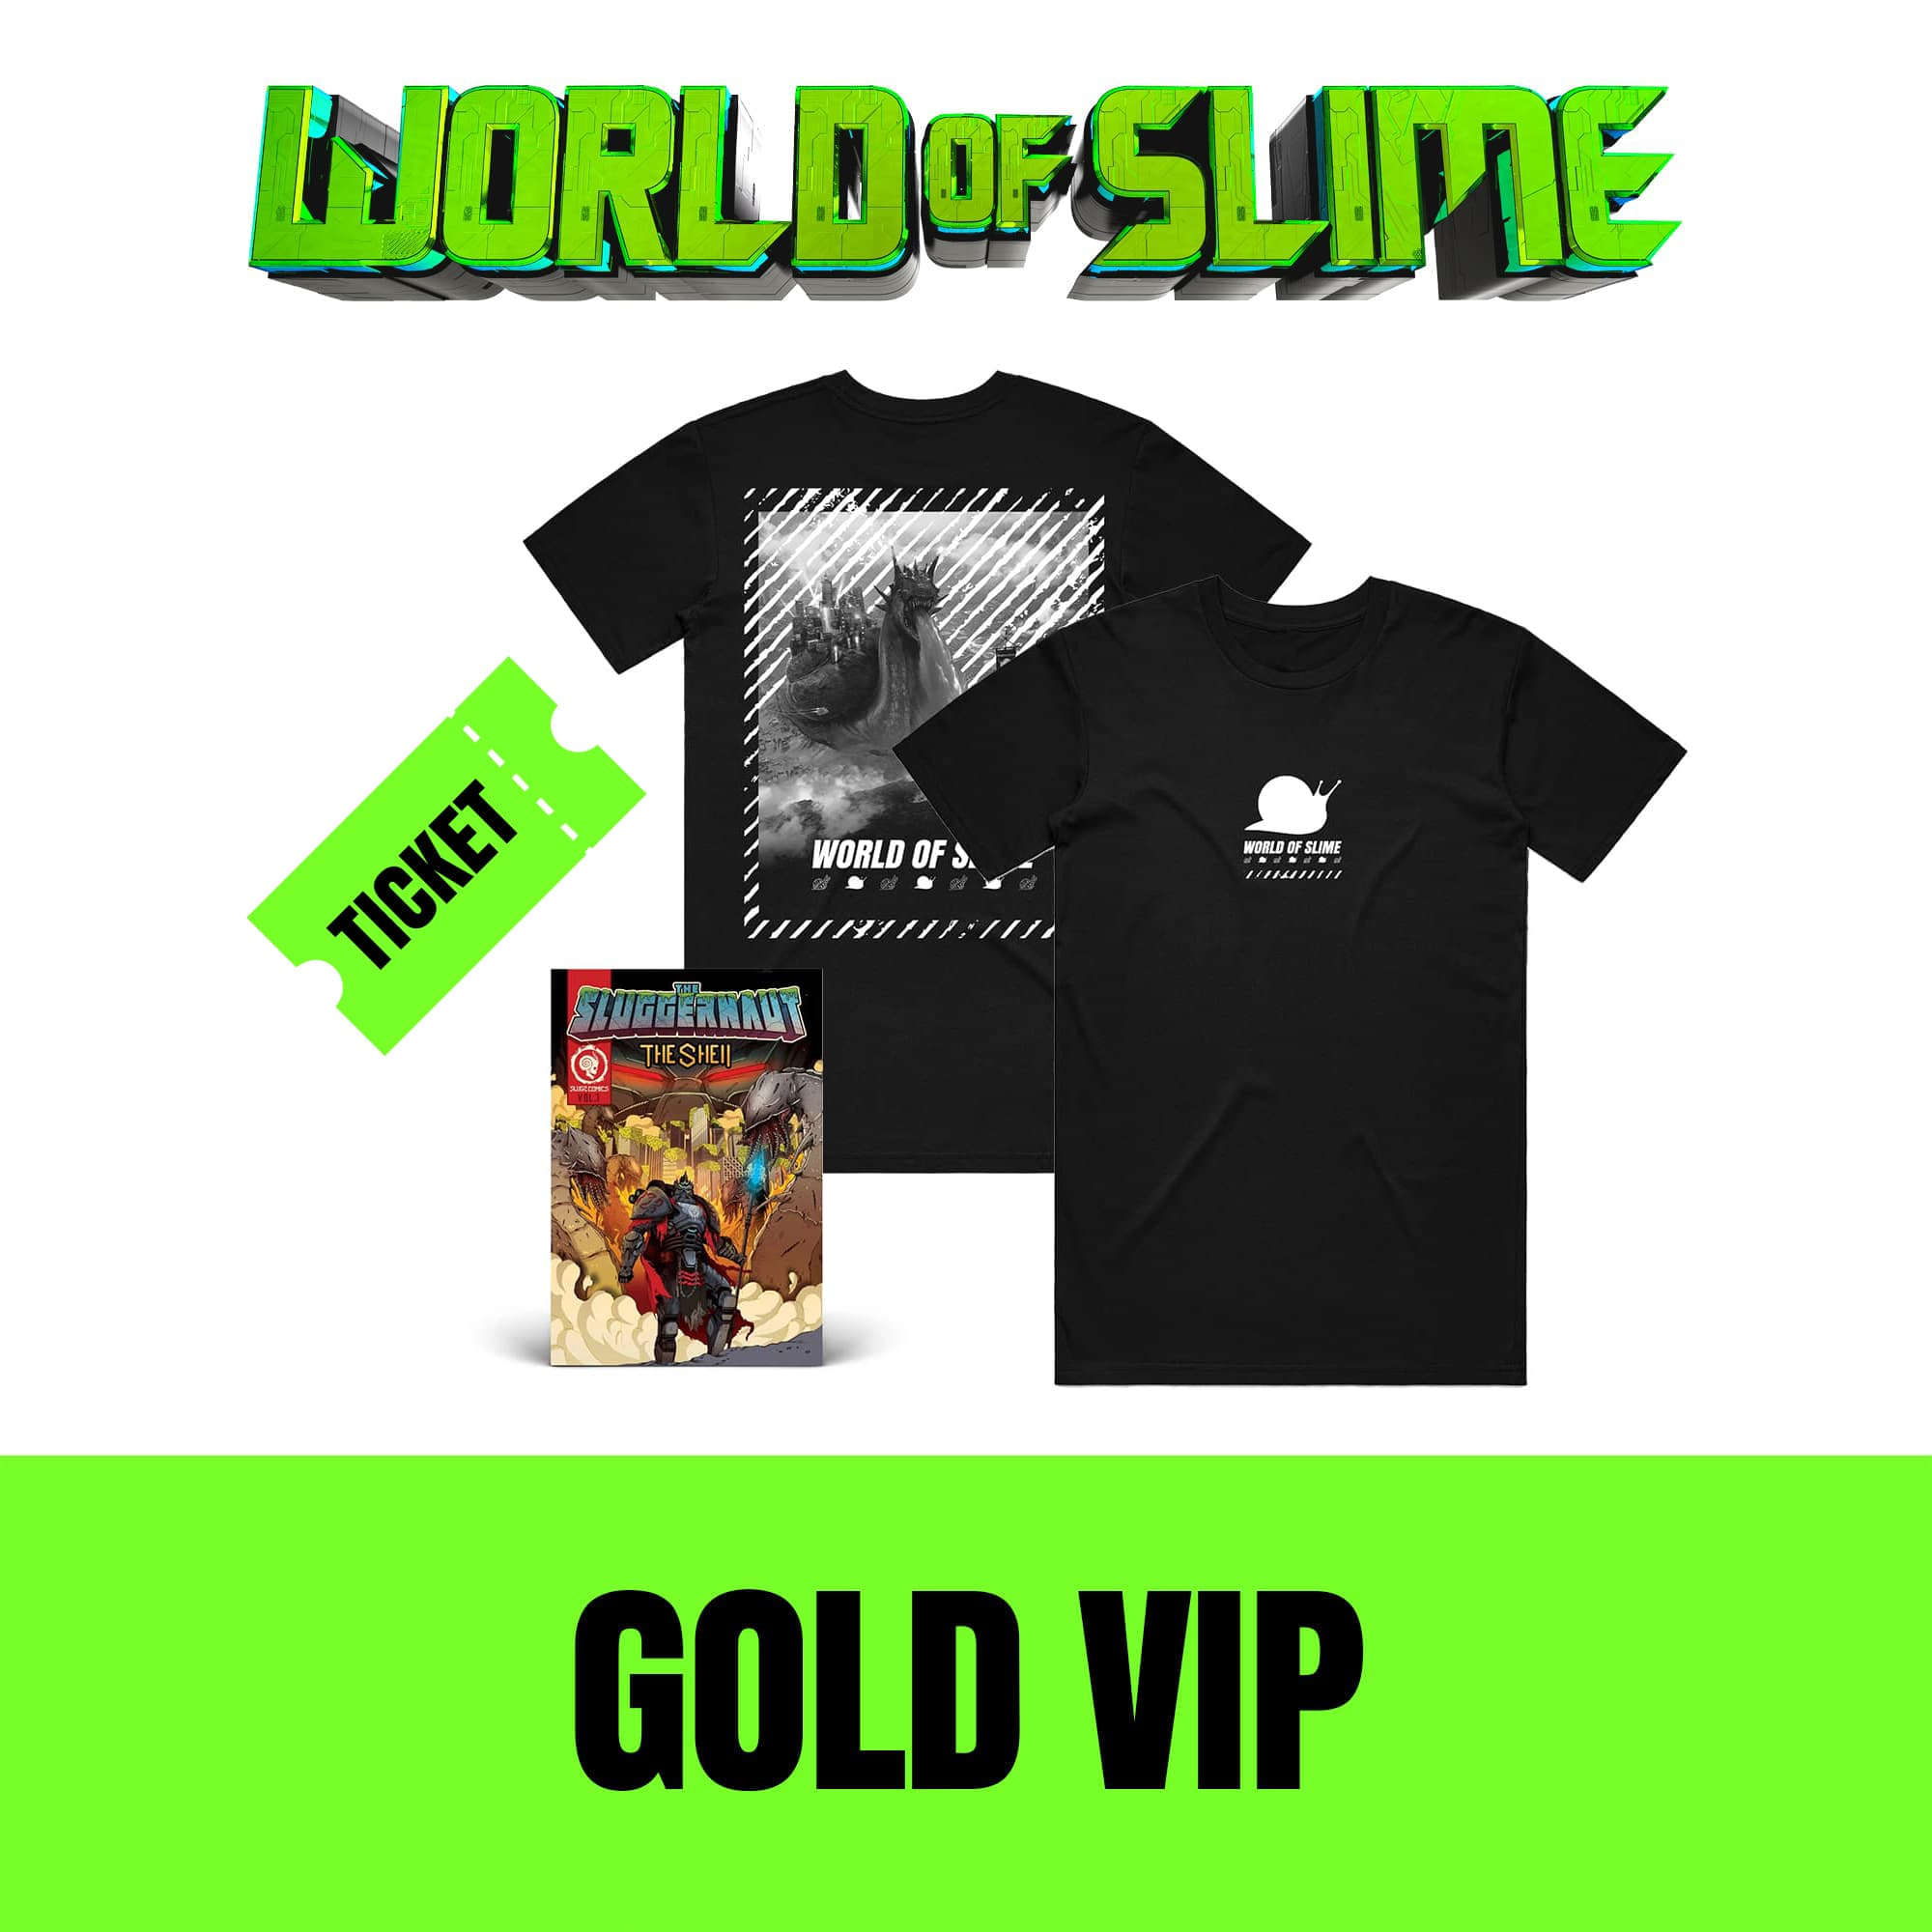 World Of Slime Tour - Grand Rapids, MI - 12/05